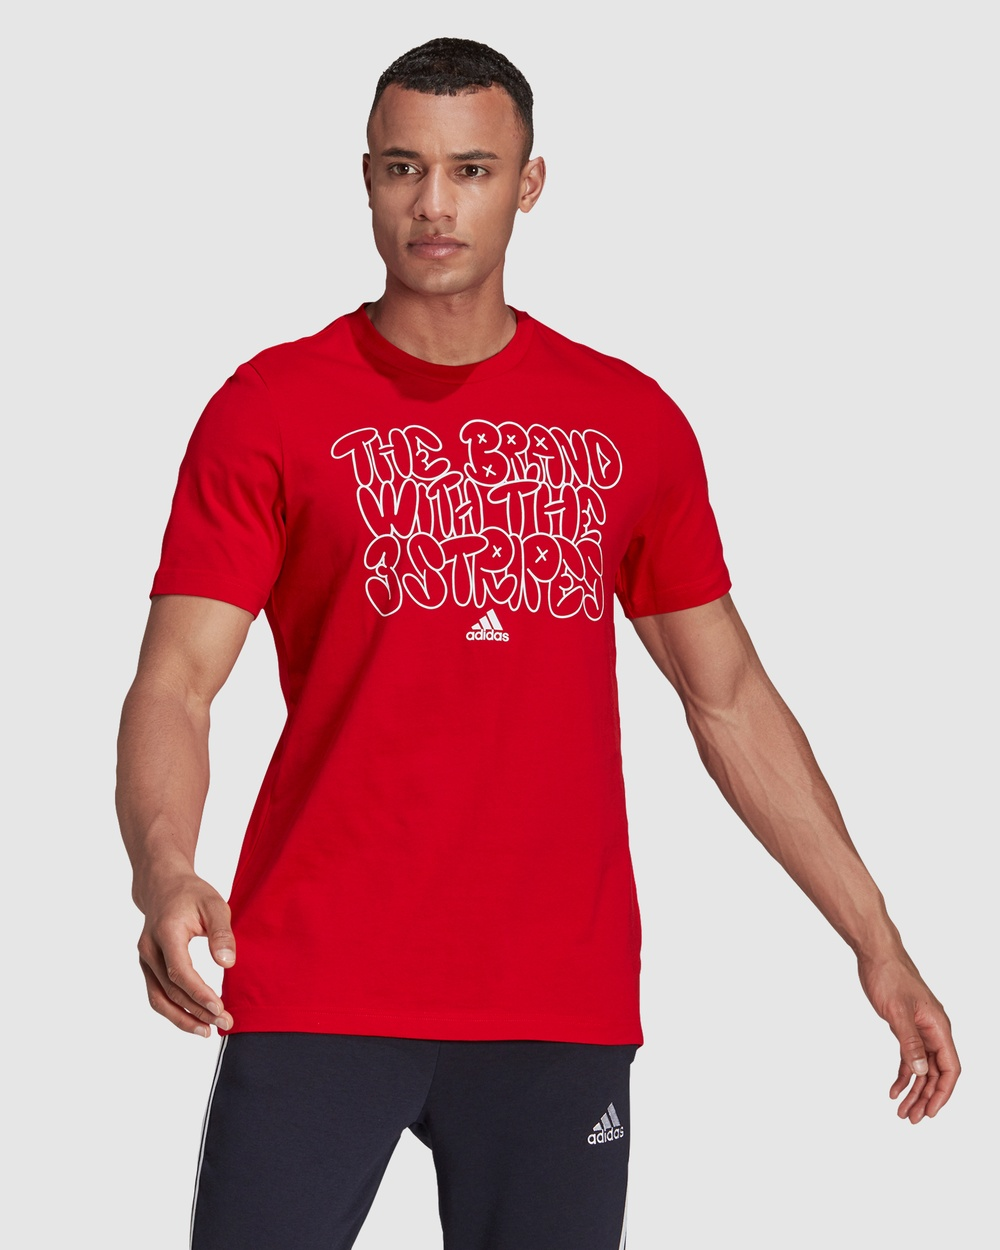 adidas Performance The Brand With the Three Stripes Doodle Graphic Tee T-Shirts & Singlets Red